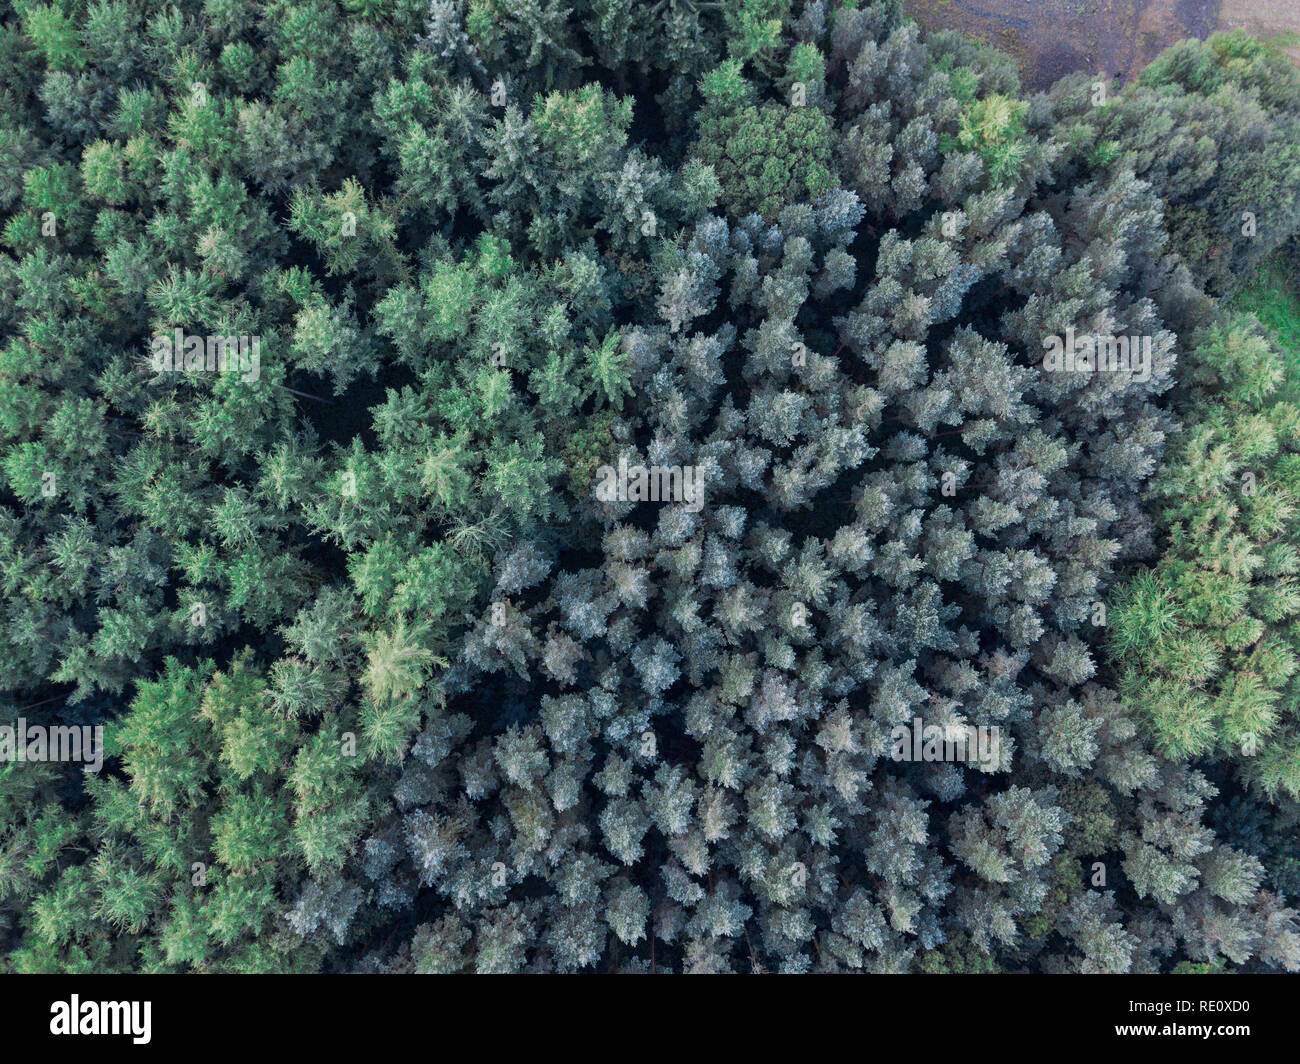 Green Trees from drone above - Stock Image